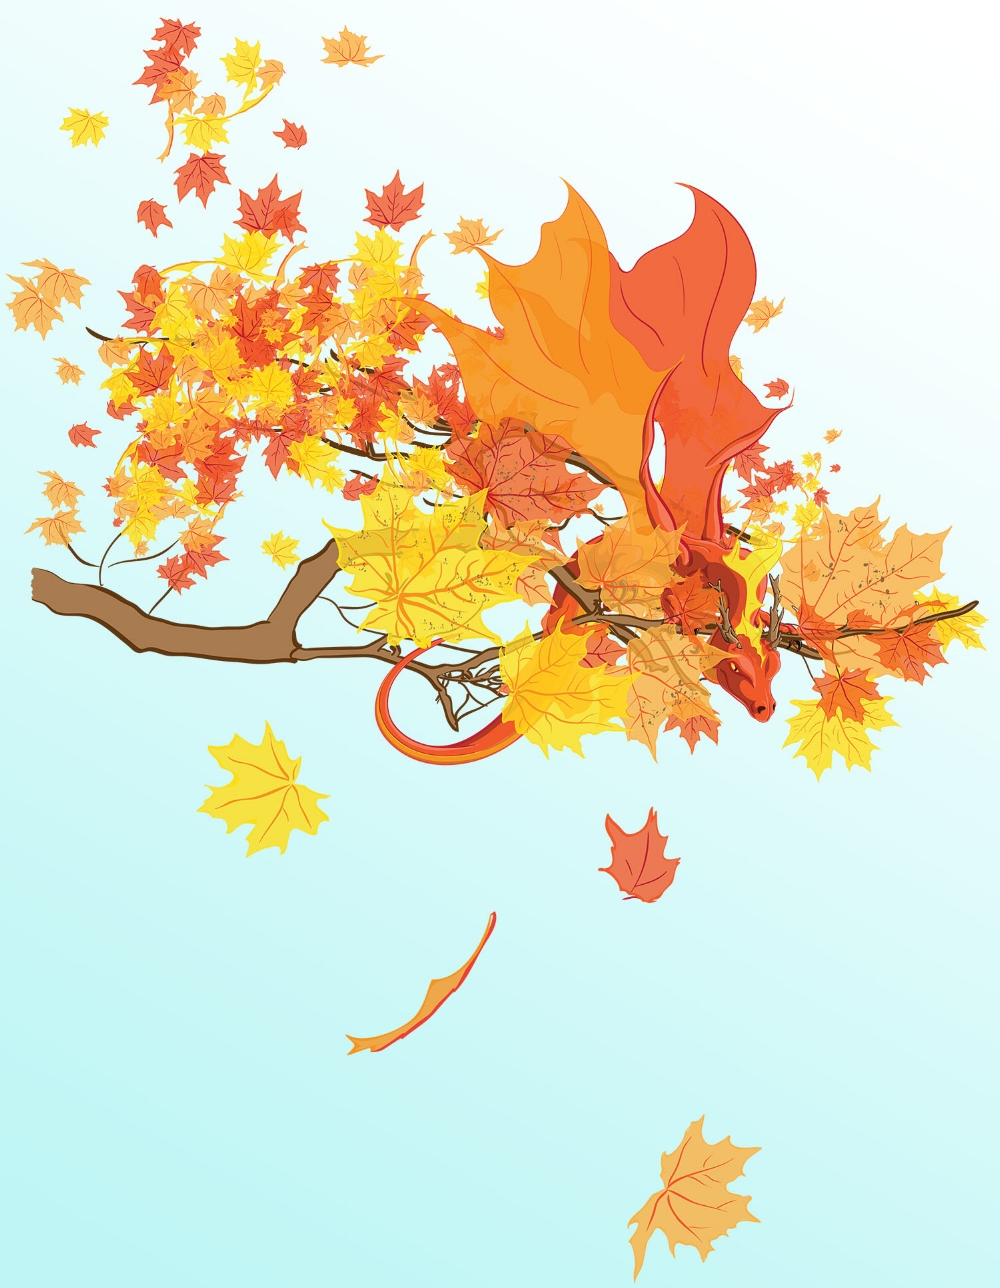 Autumn-Dragon-web2.jpg